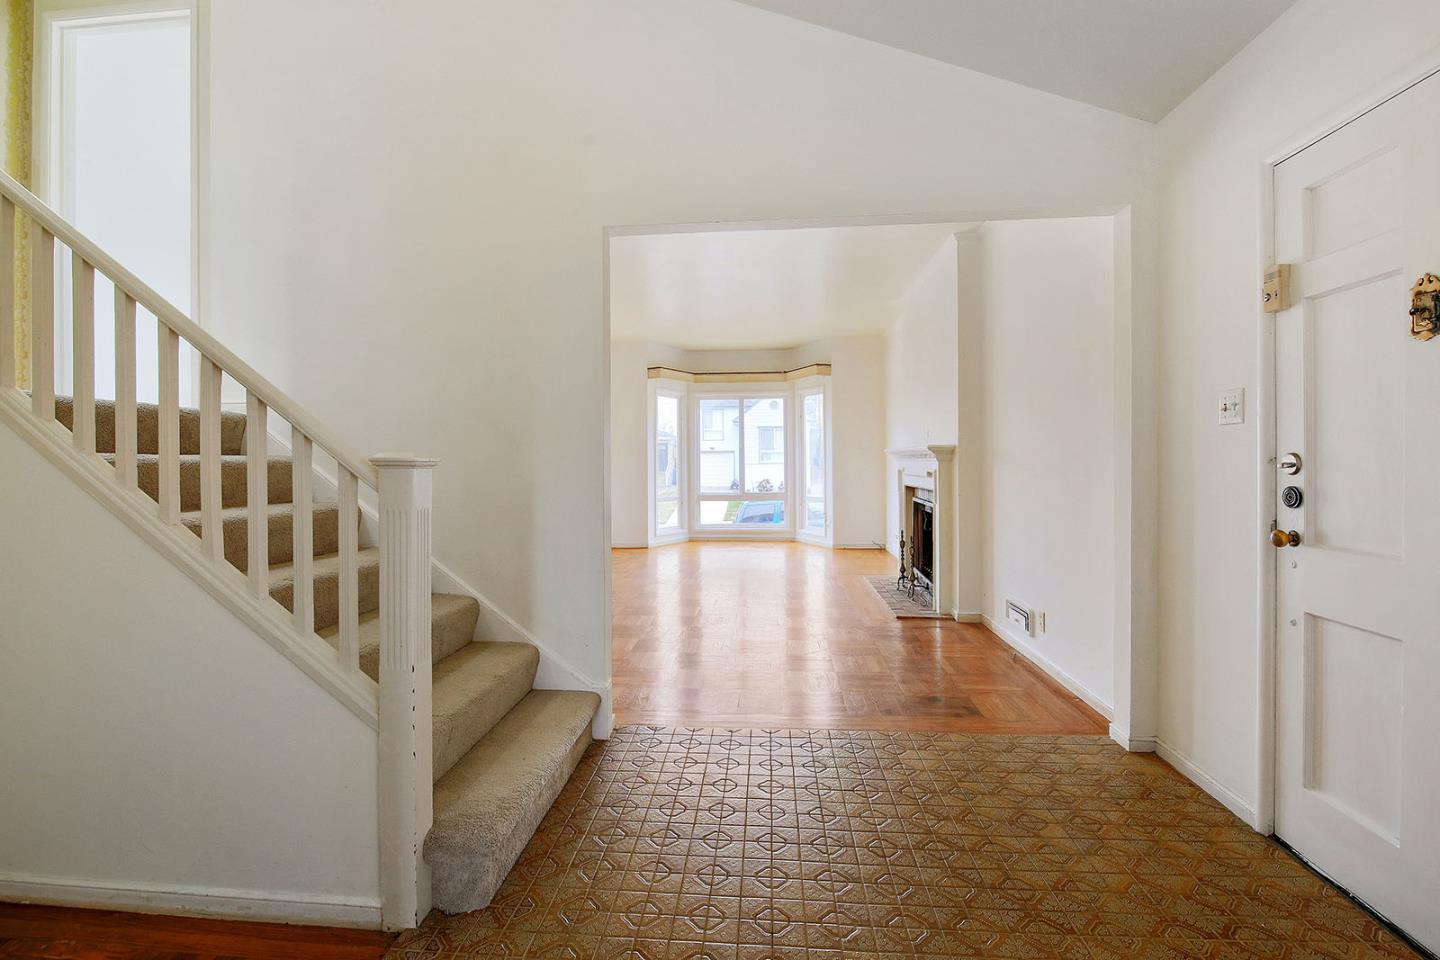 Additional photo for property listing at 87 Westdale Avenue  Daly City, California 94015 United States